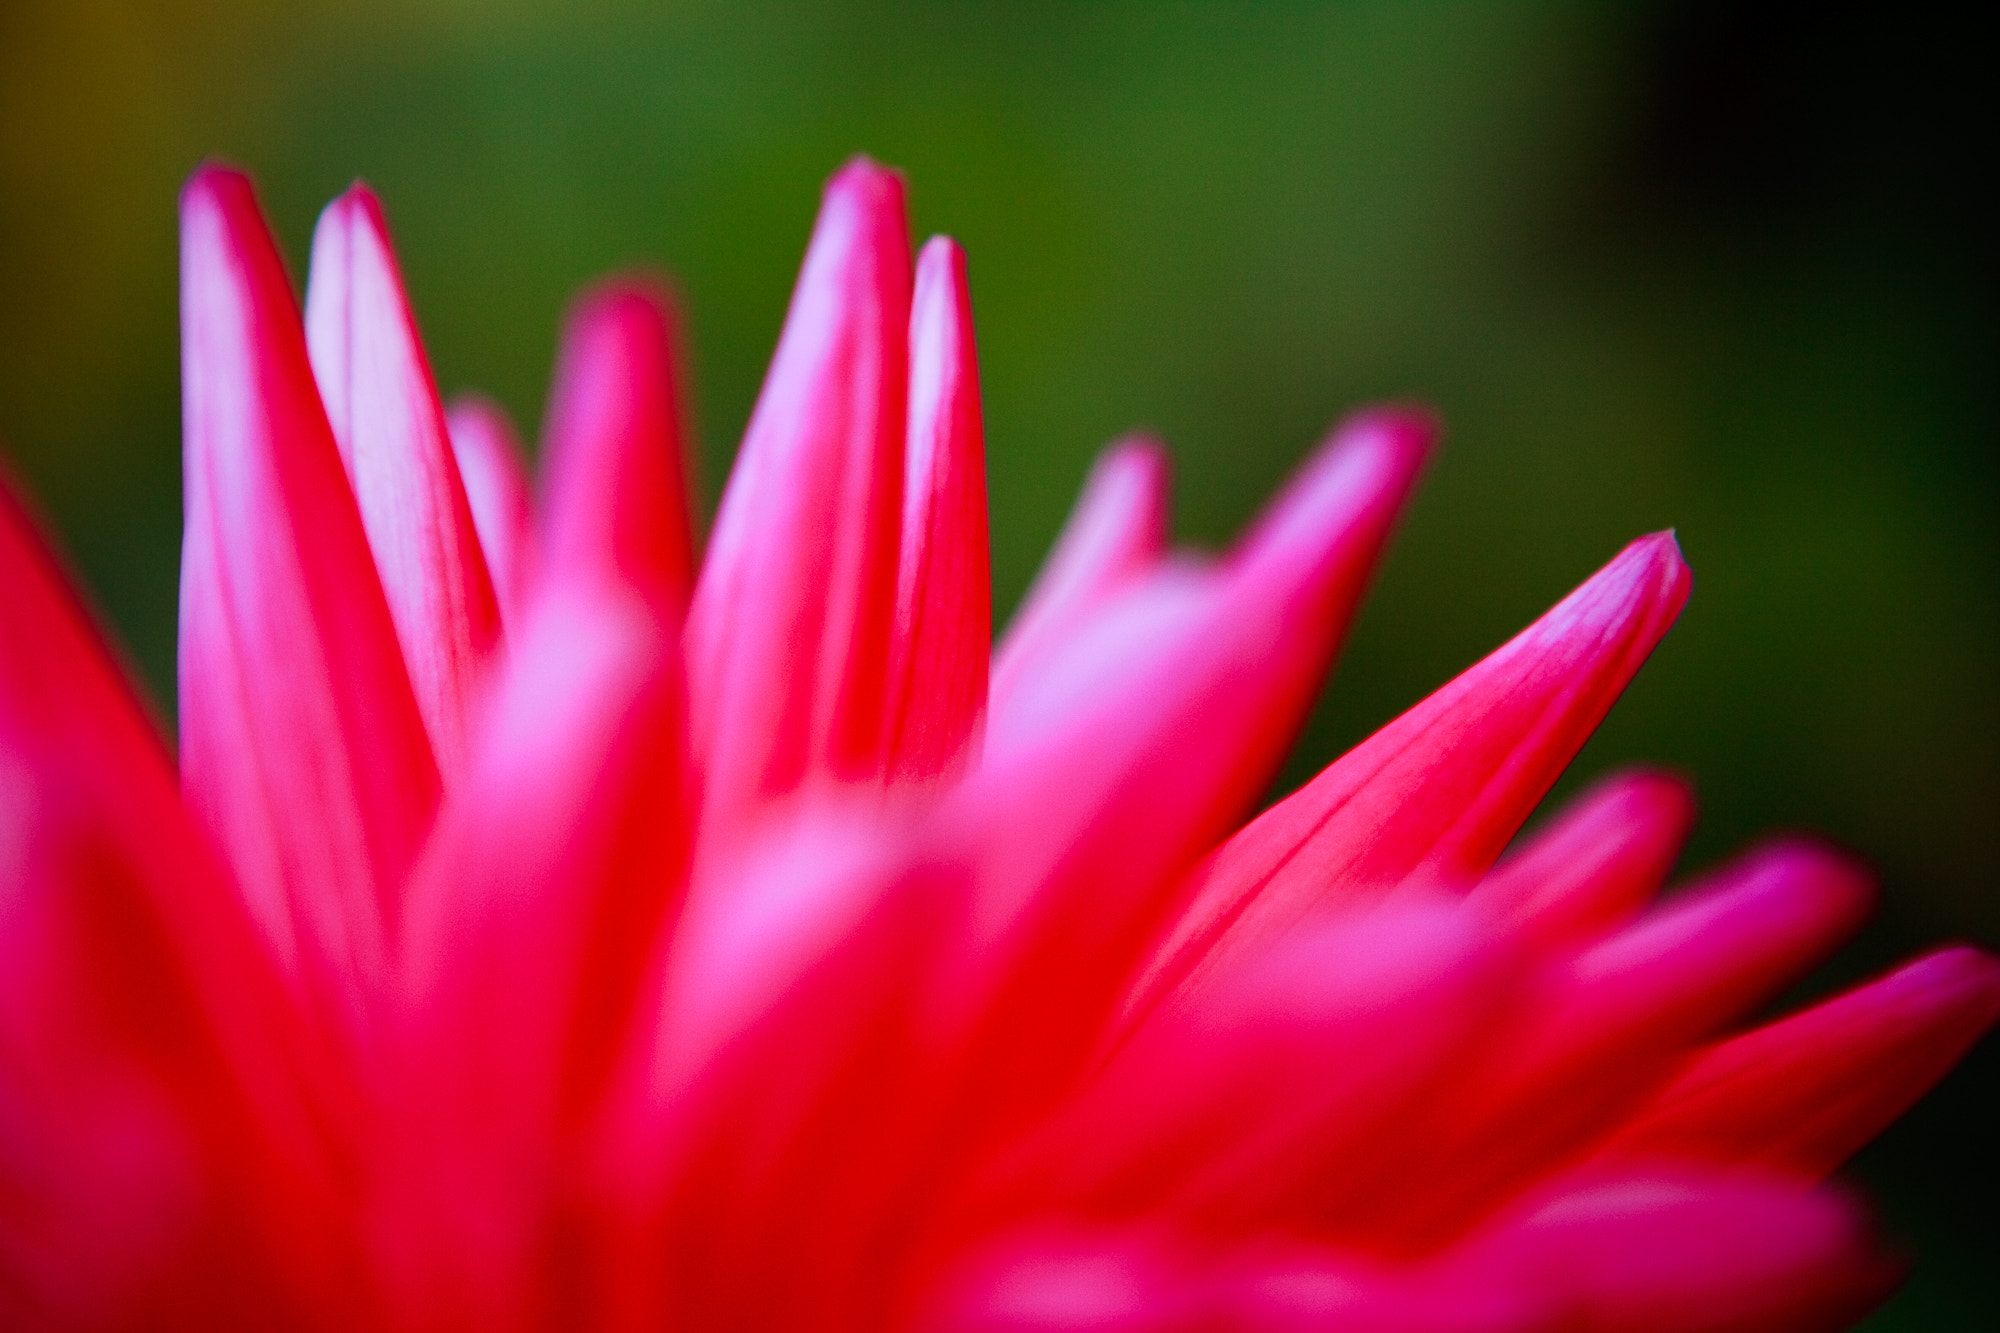 Photograph Pretty in pink by Tristan Rayner on 500px